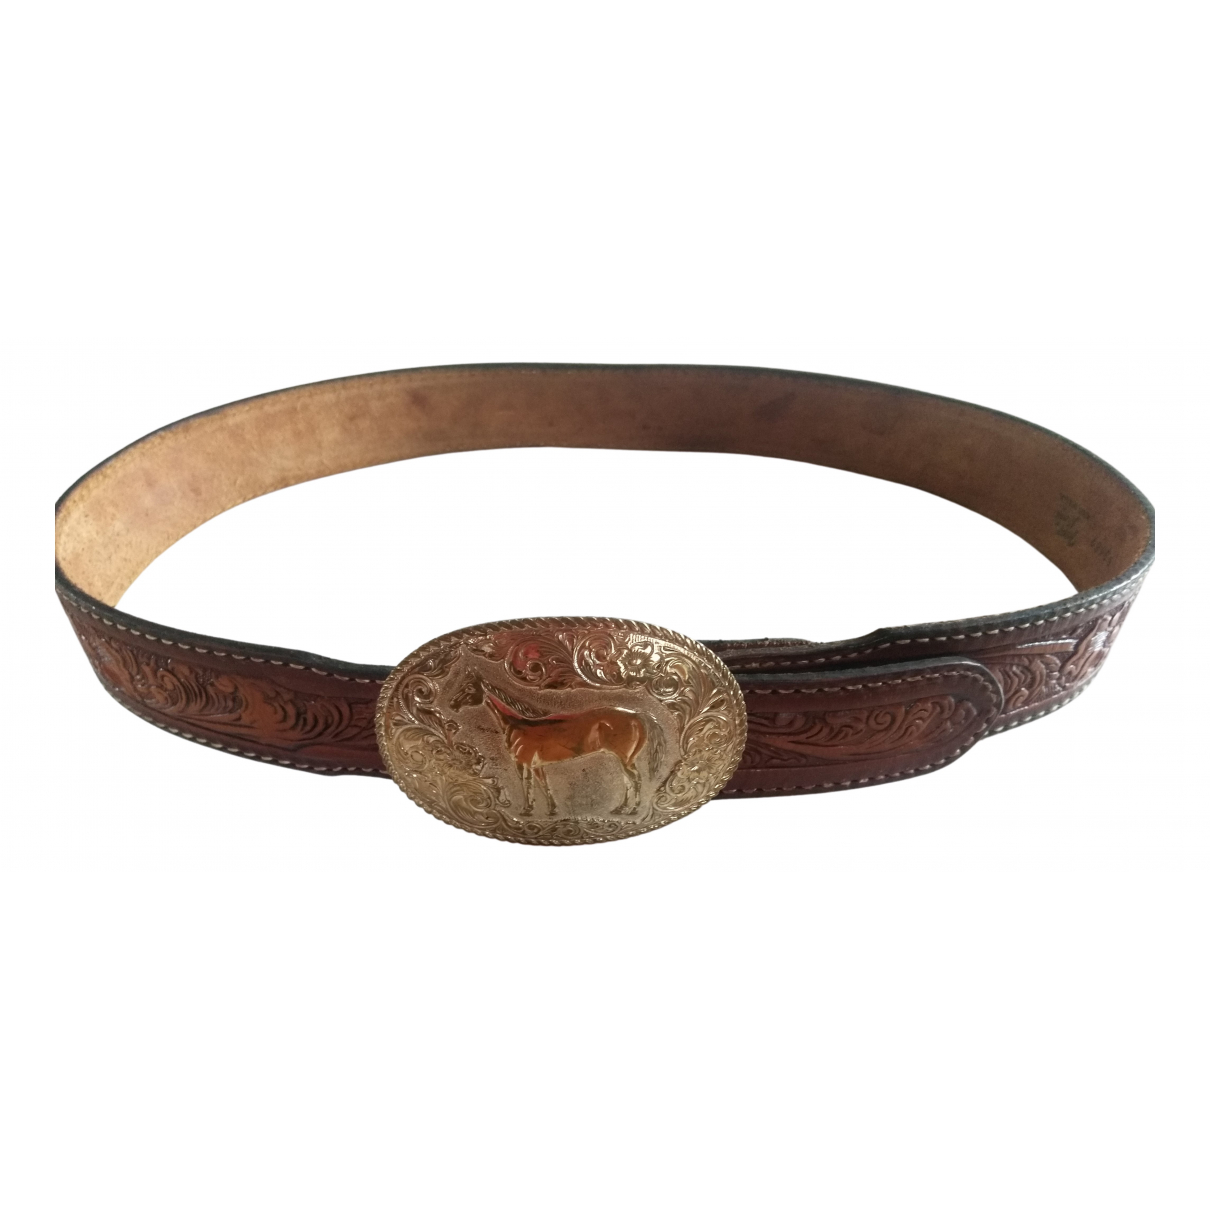 Tony Lama \N Brown Leather belt for Men 39 Inches